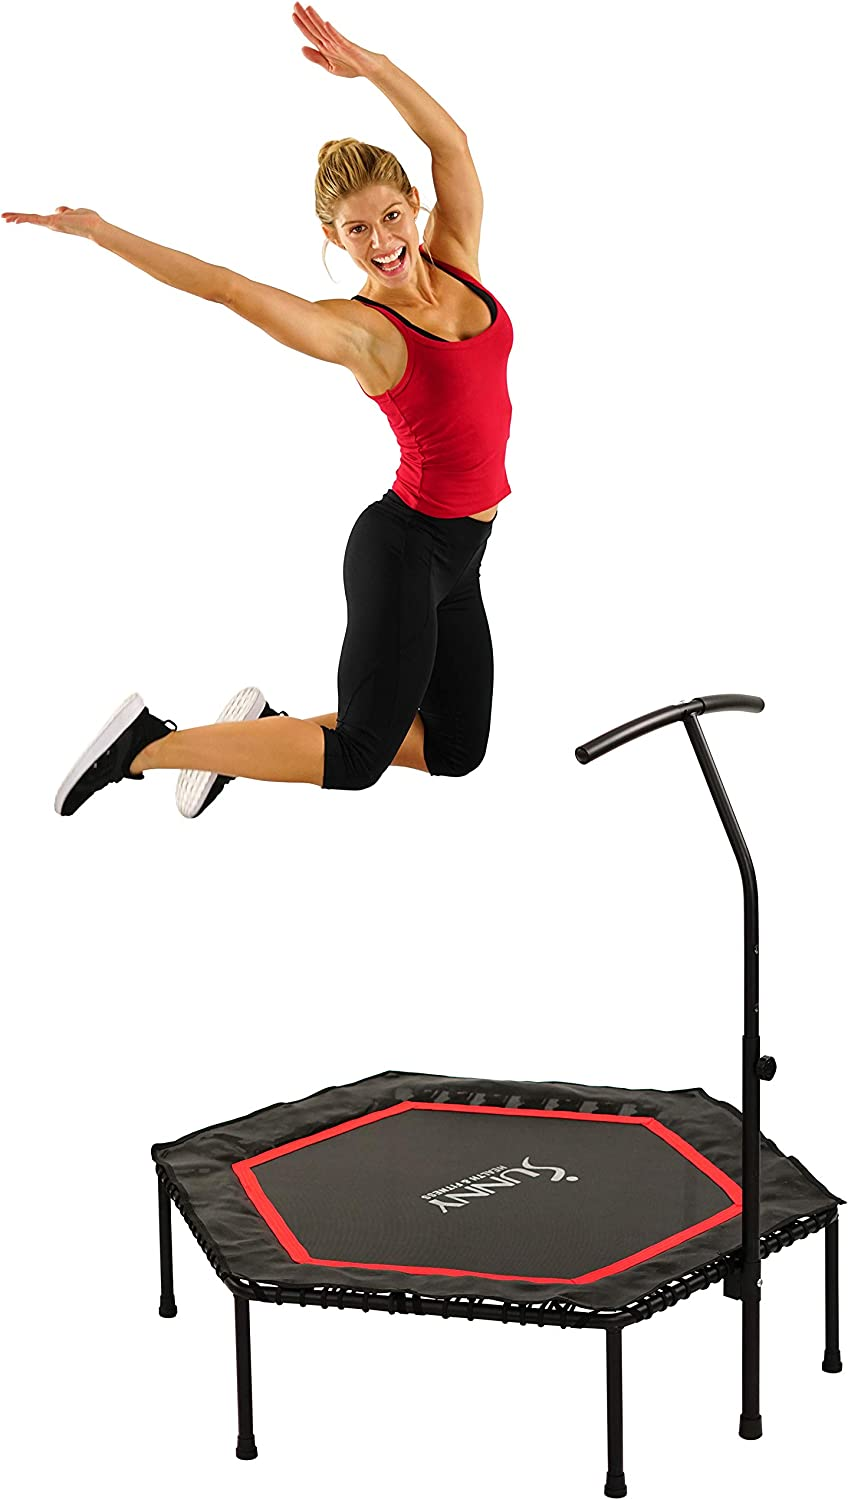 Sunny Max 60% OFF Health Fitness NO. All items in the store 079 with Rebounder Trampoline Hexagon